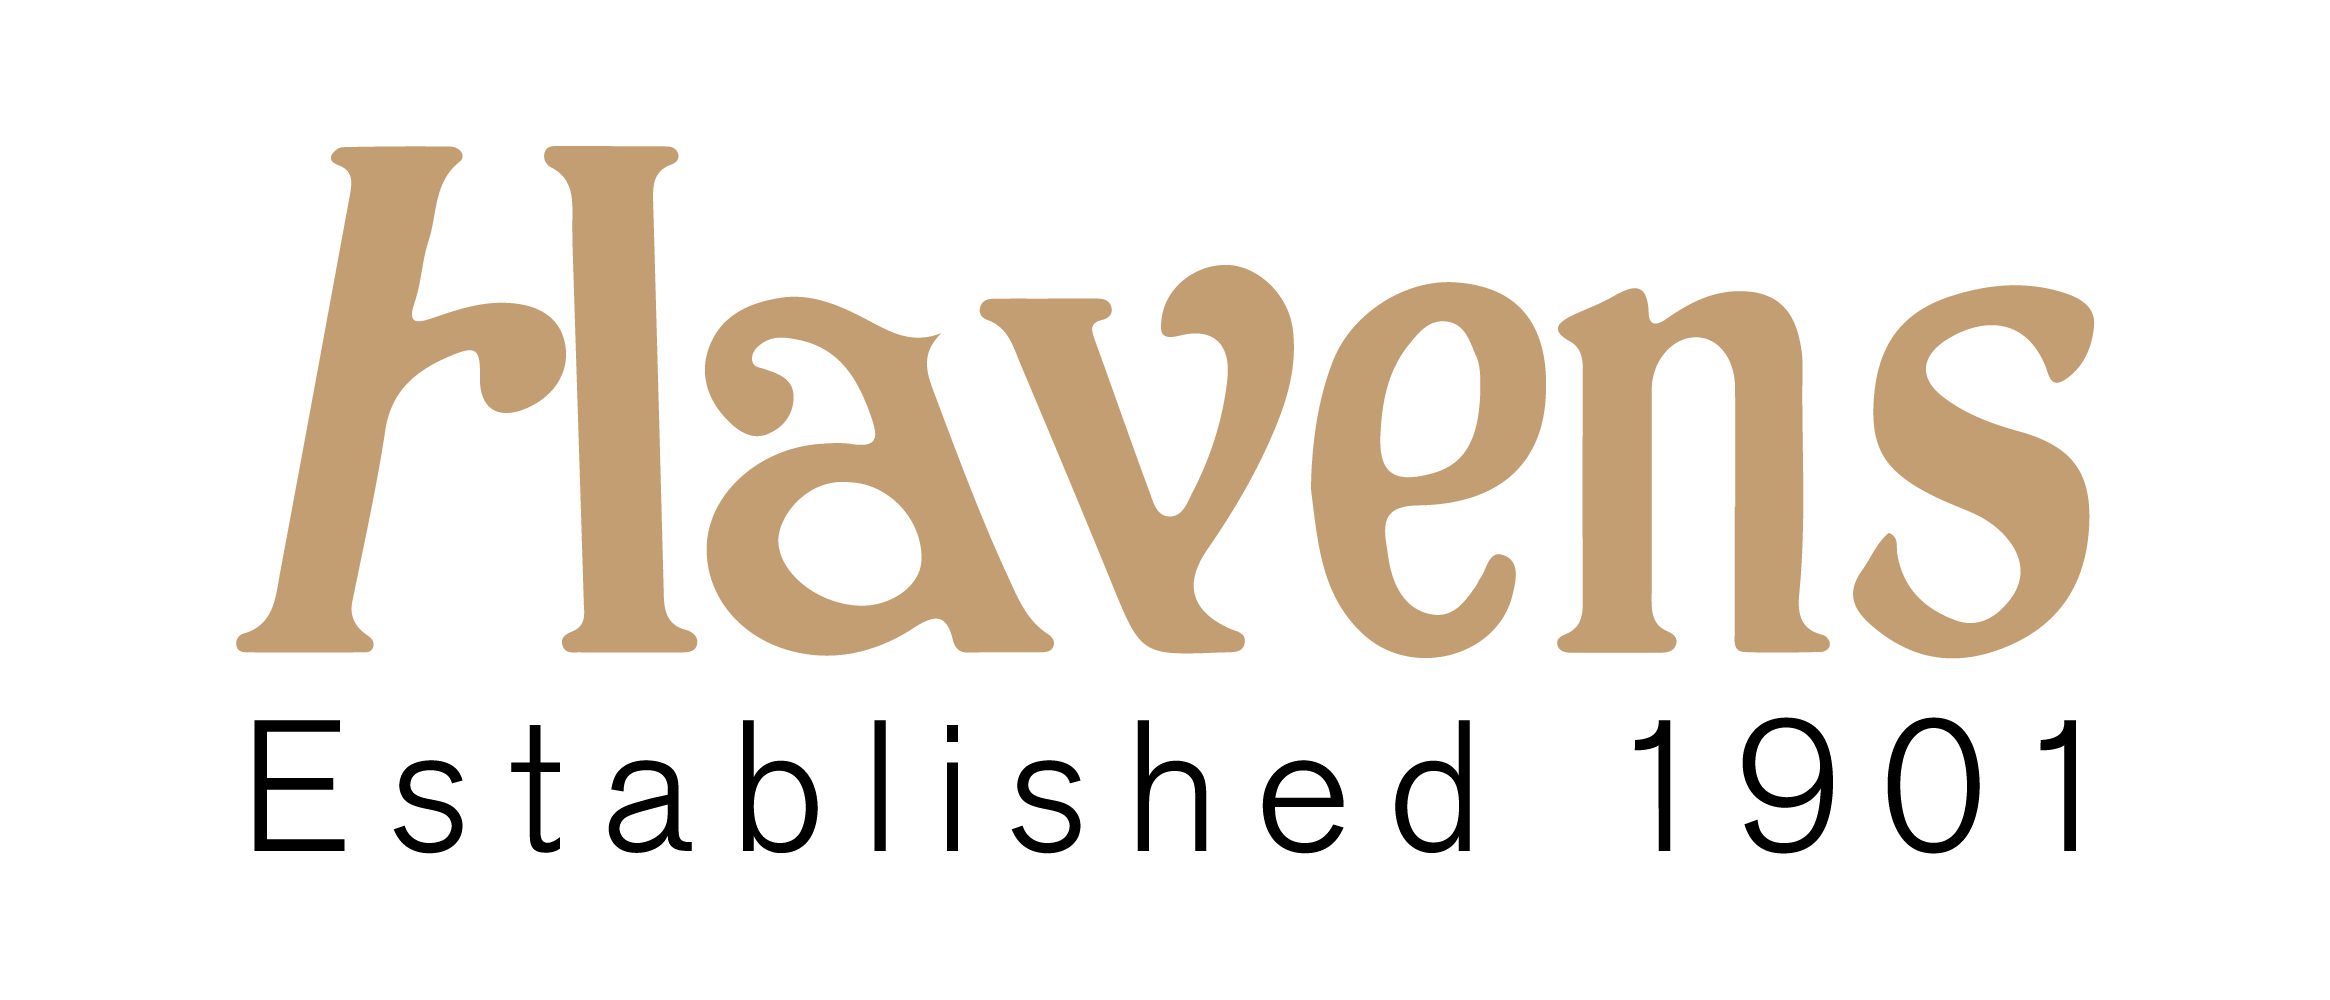 Havens.co.uk